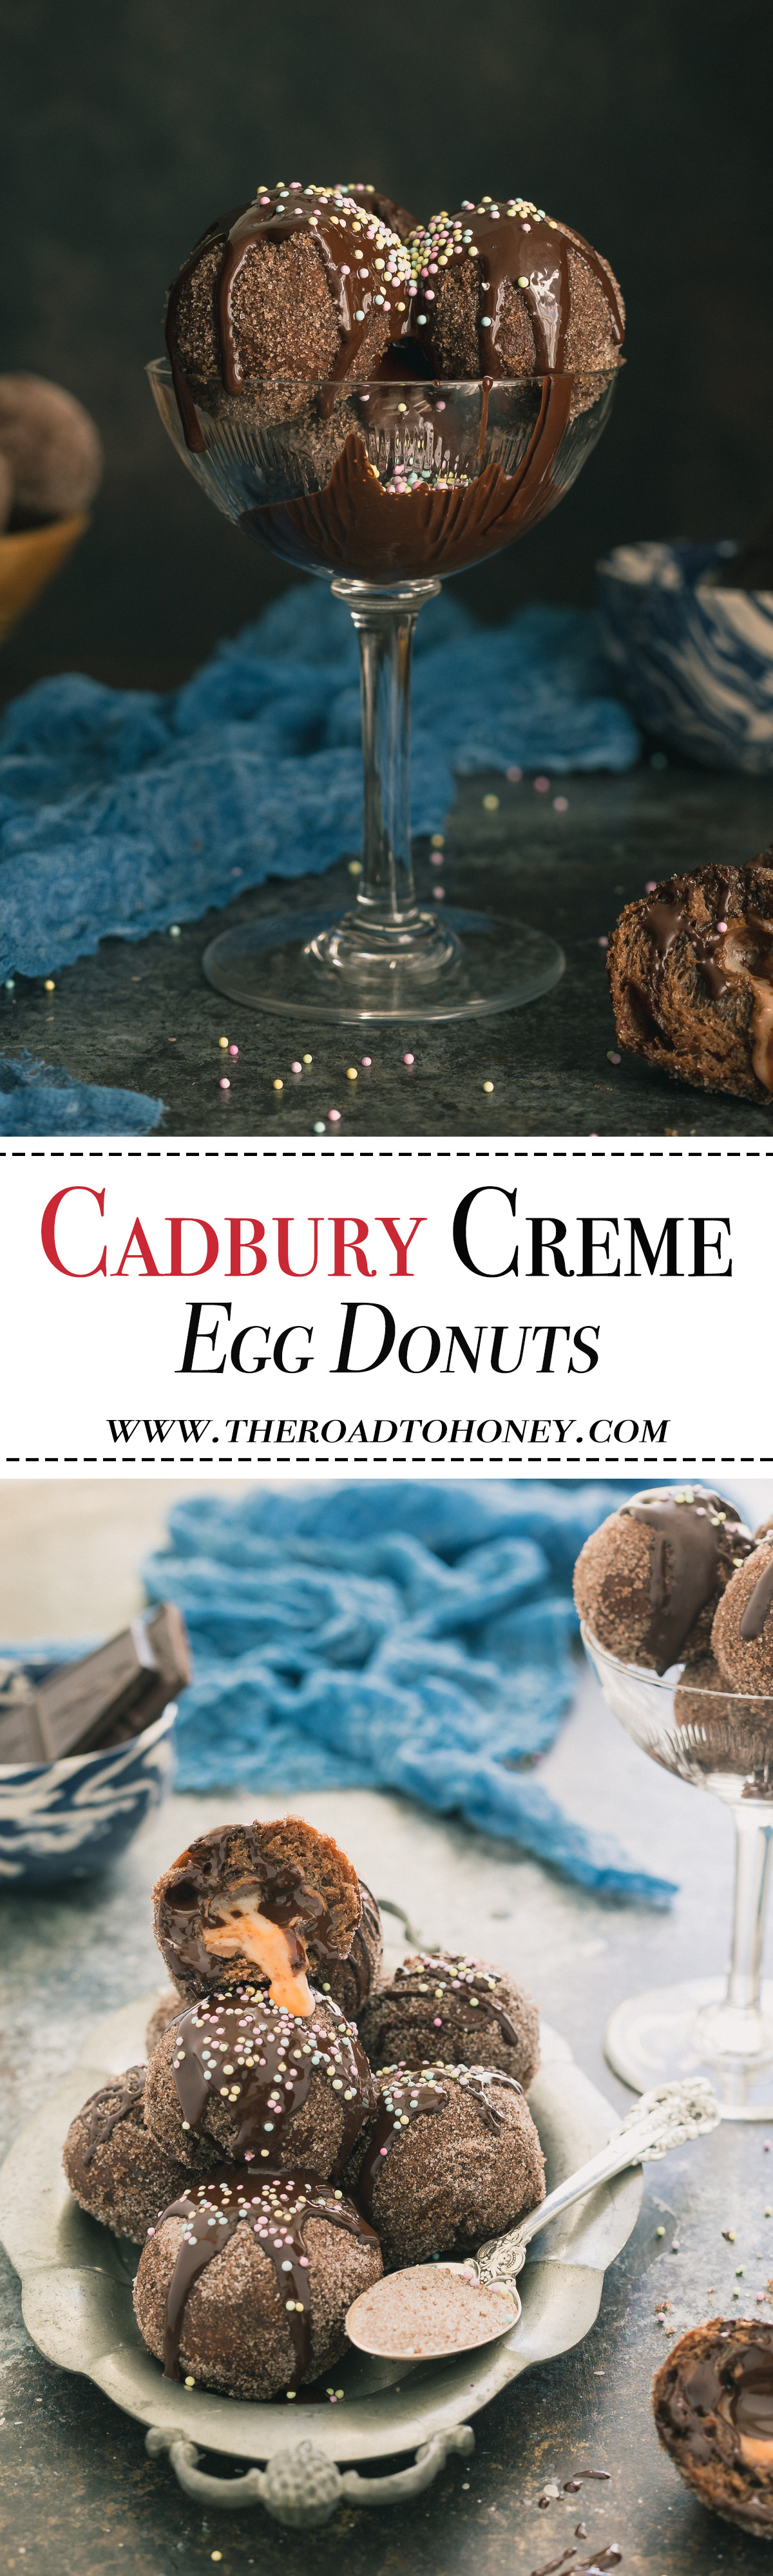 Cadbury Creme Egg Donuts - A decadent chocolate brioche is converted into wickedly soft brioche donuts and filled with a rich & creamy Cadbury Creme Egg. Perfect for Easter celebration or using up that Easter candy after the holiday is long gone. Click for RECIPE.